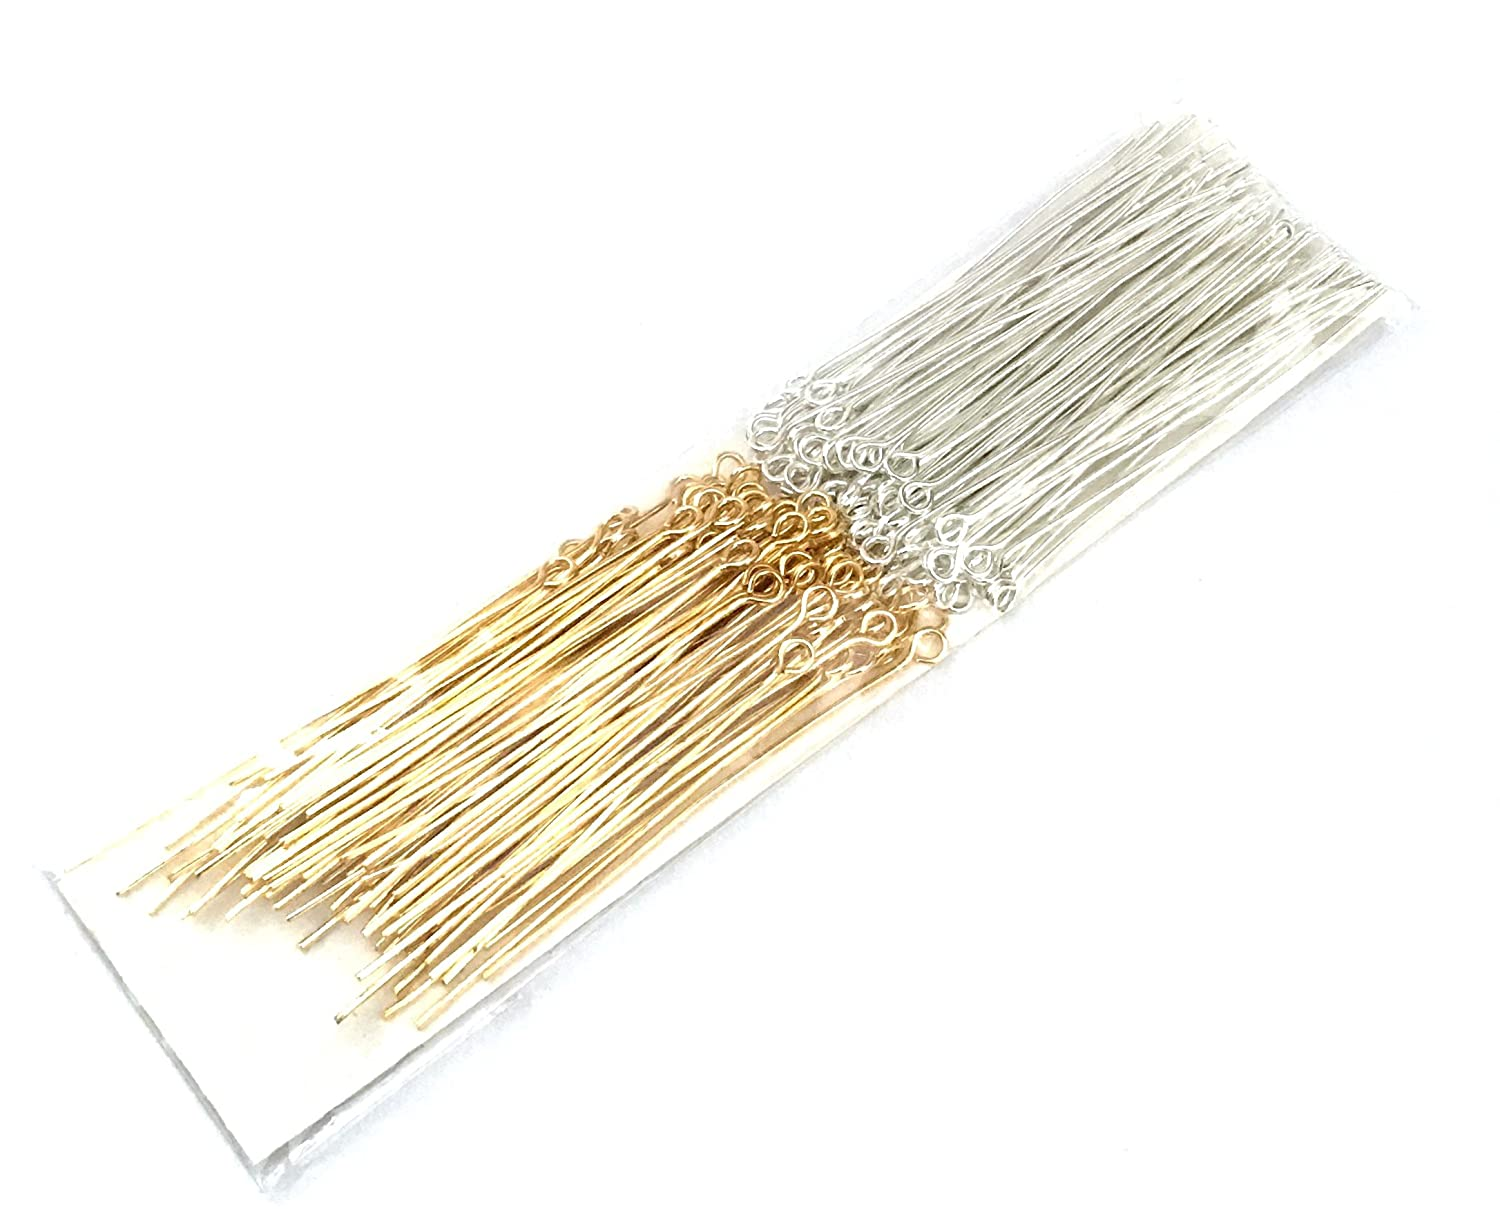 196 pcs 2 colors Silver Plated Gold Eye Pins Jewelry Making Head Tools Pin 30mm Sweet Crafty Tools